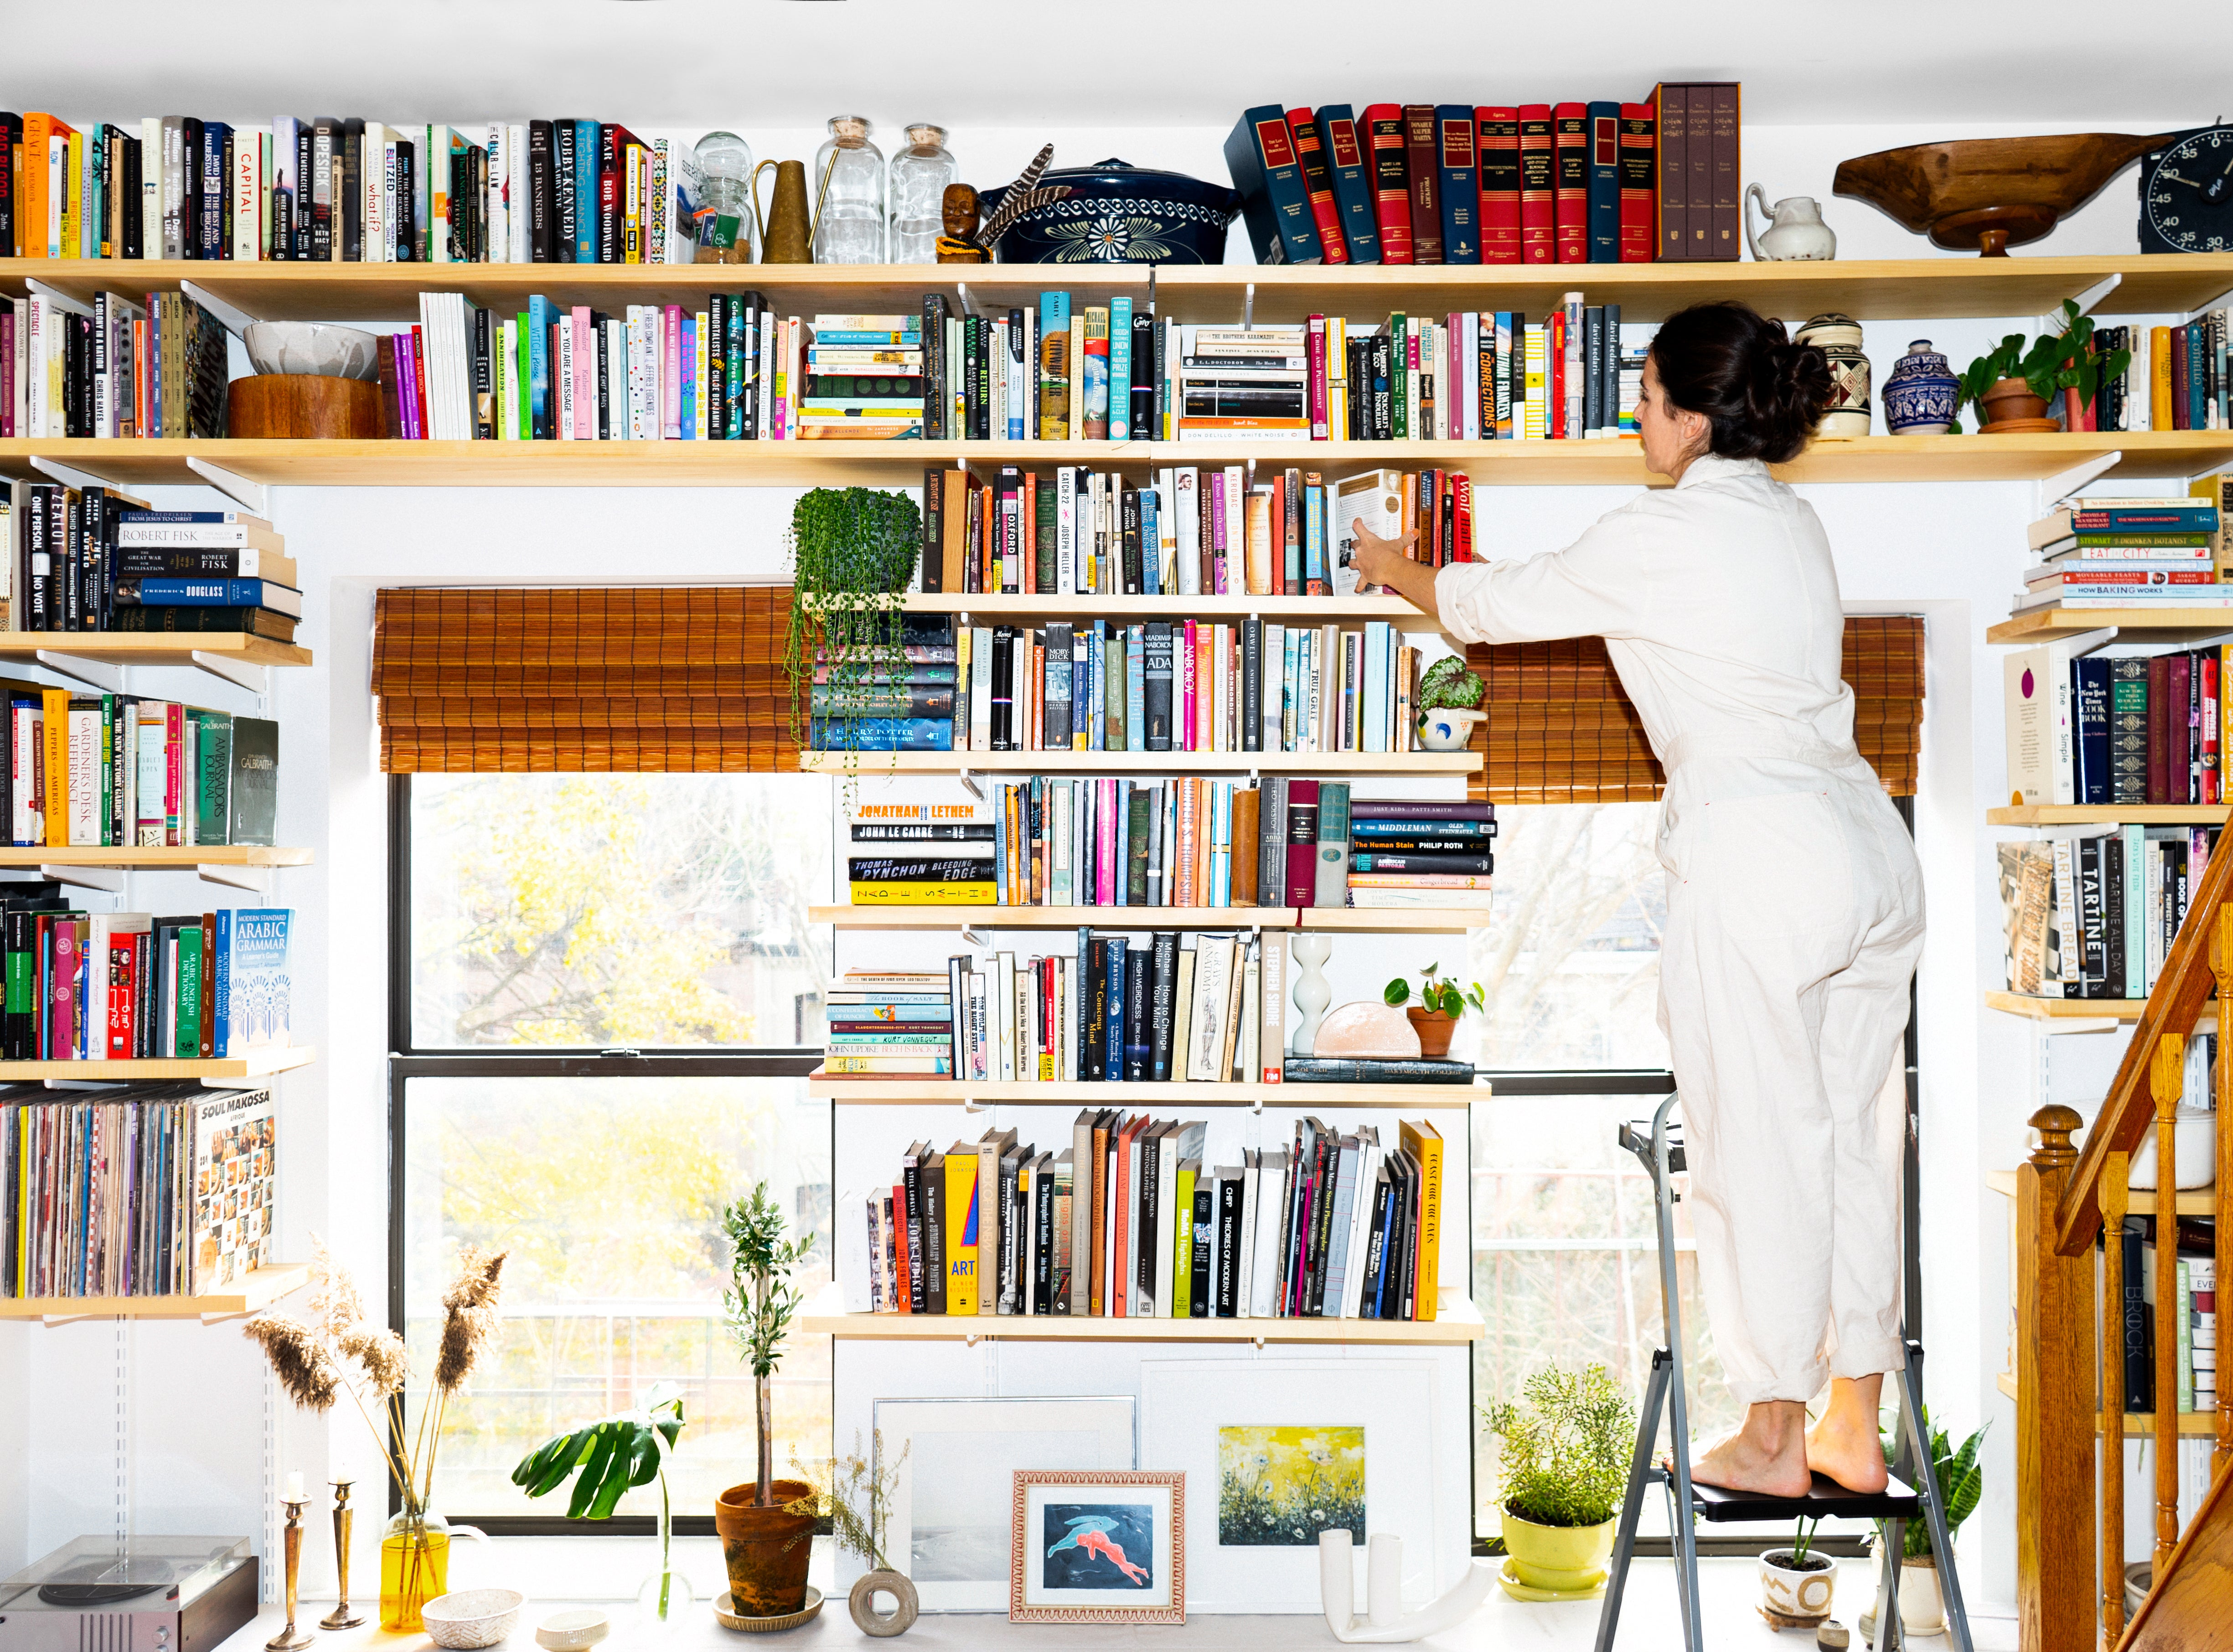 woman on a ladder arranging books